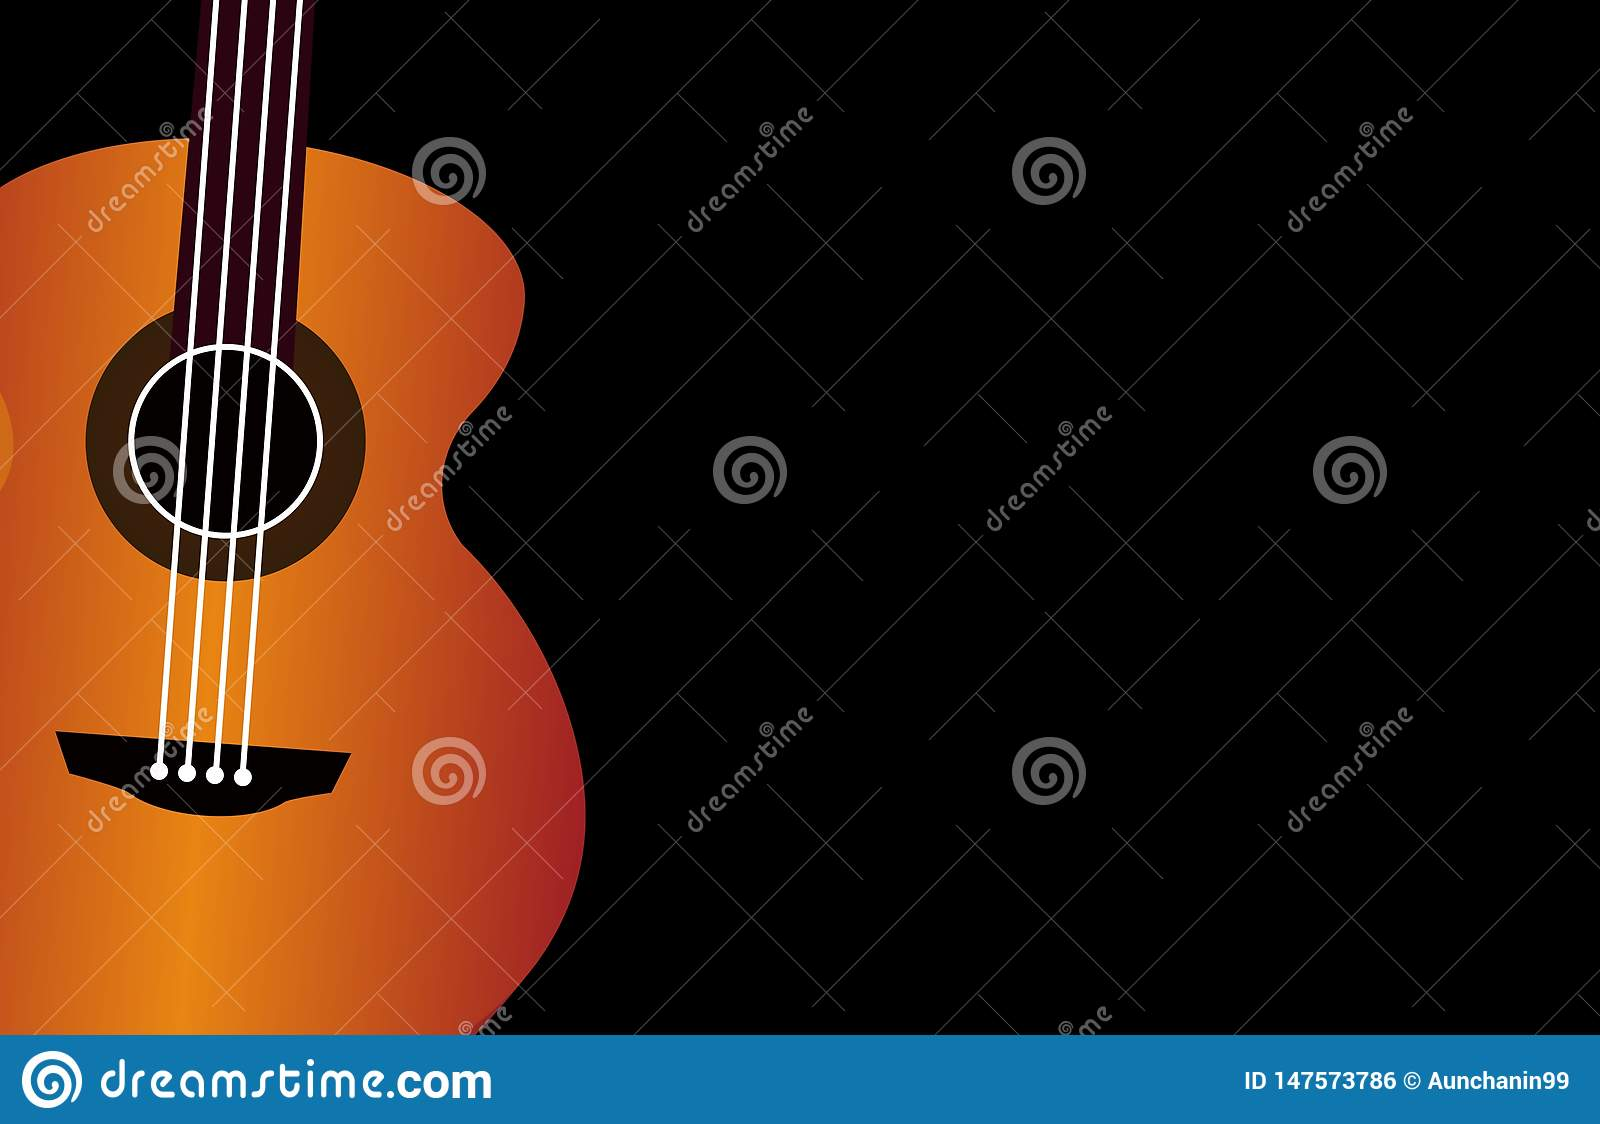 Classical Guitar Wallpaper Isolated On Black Background For